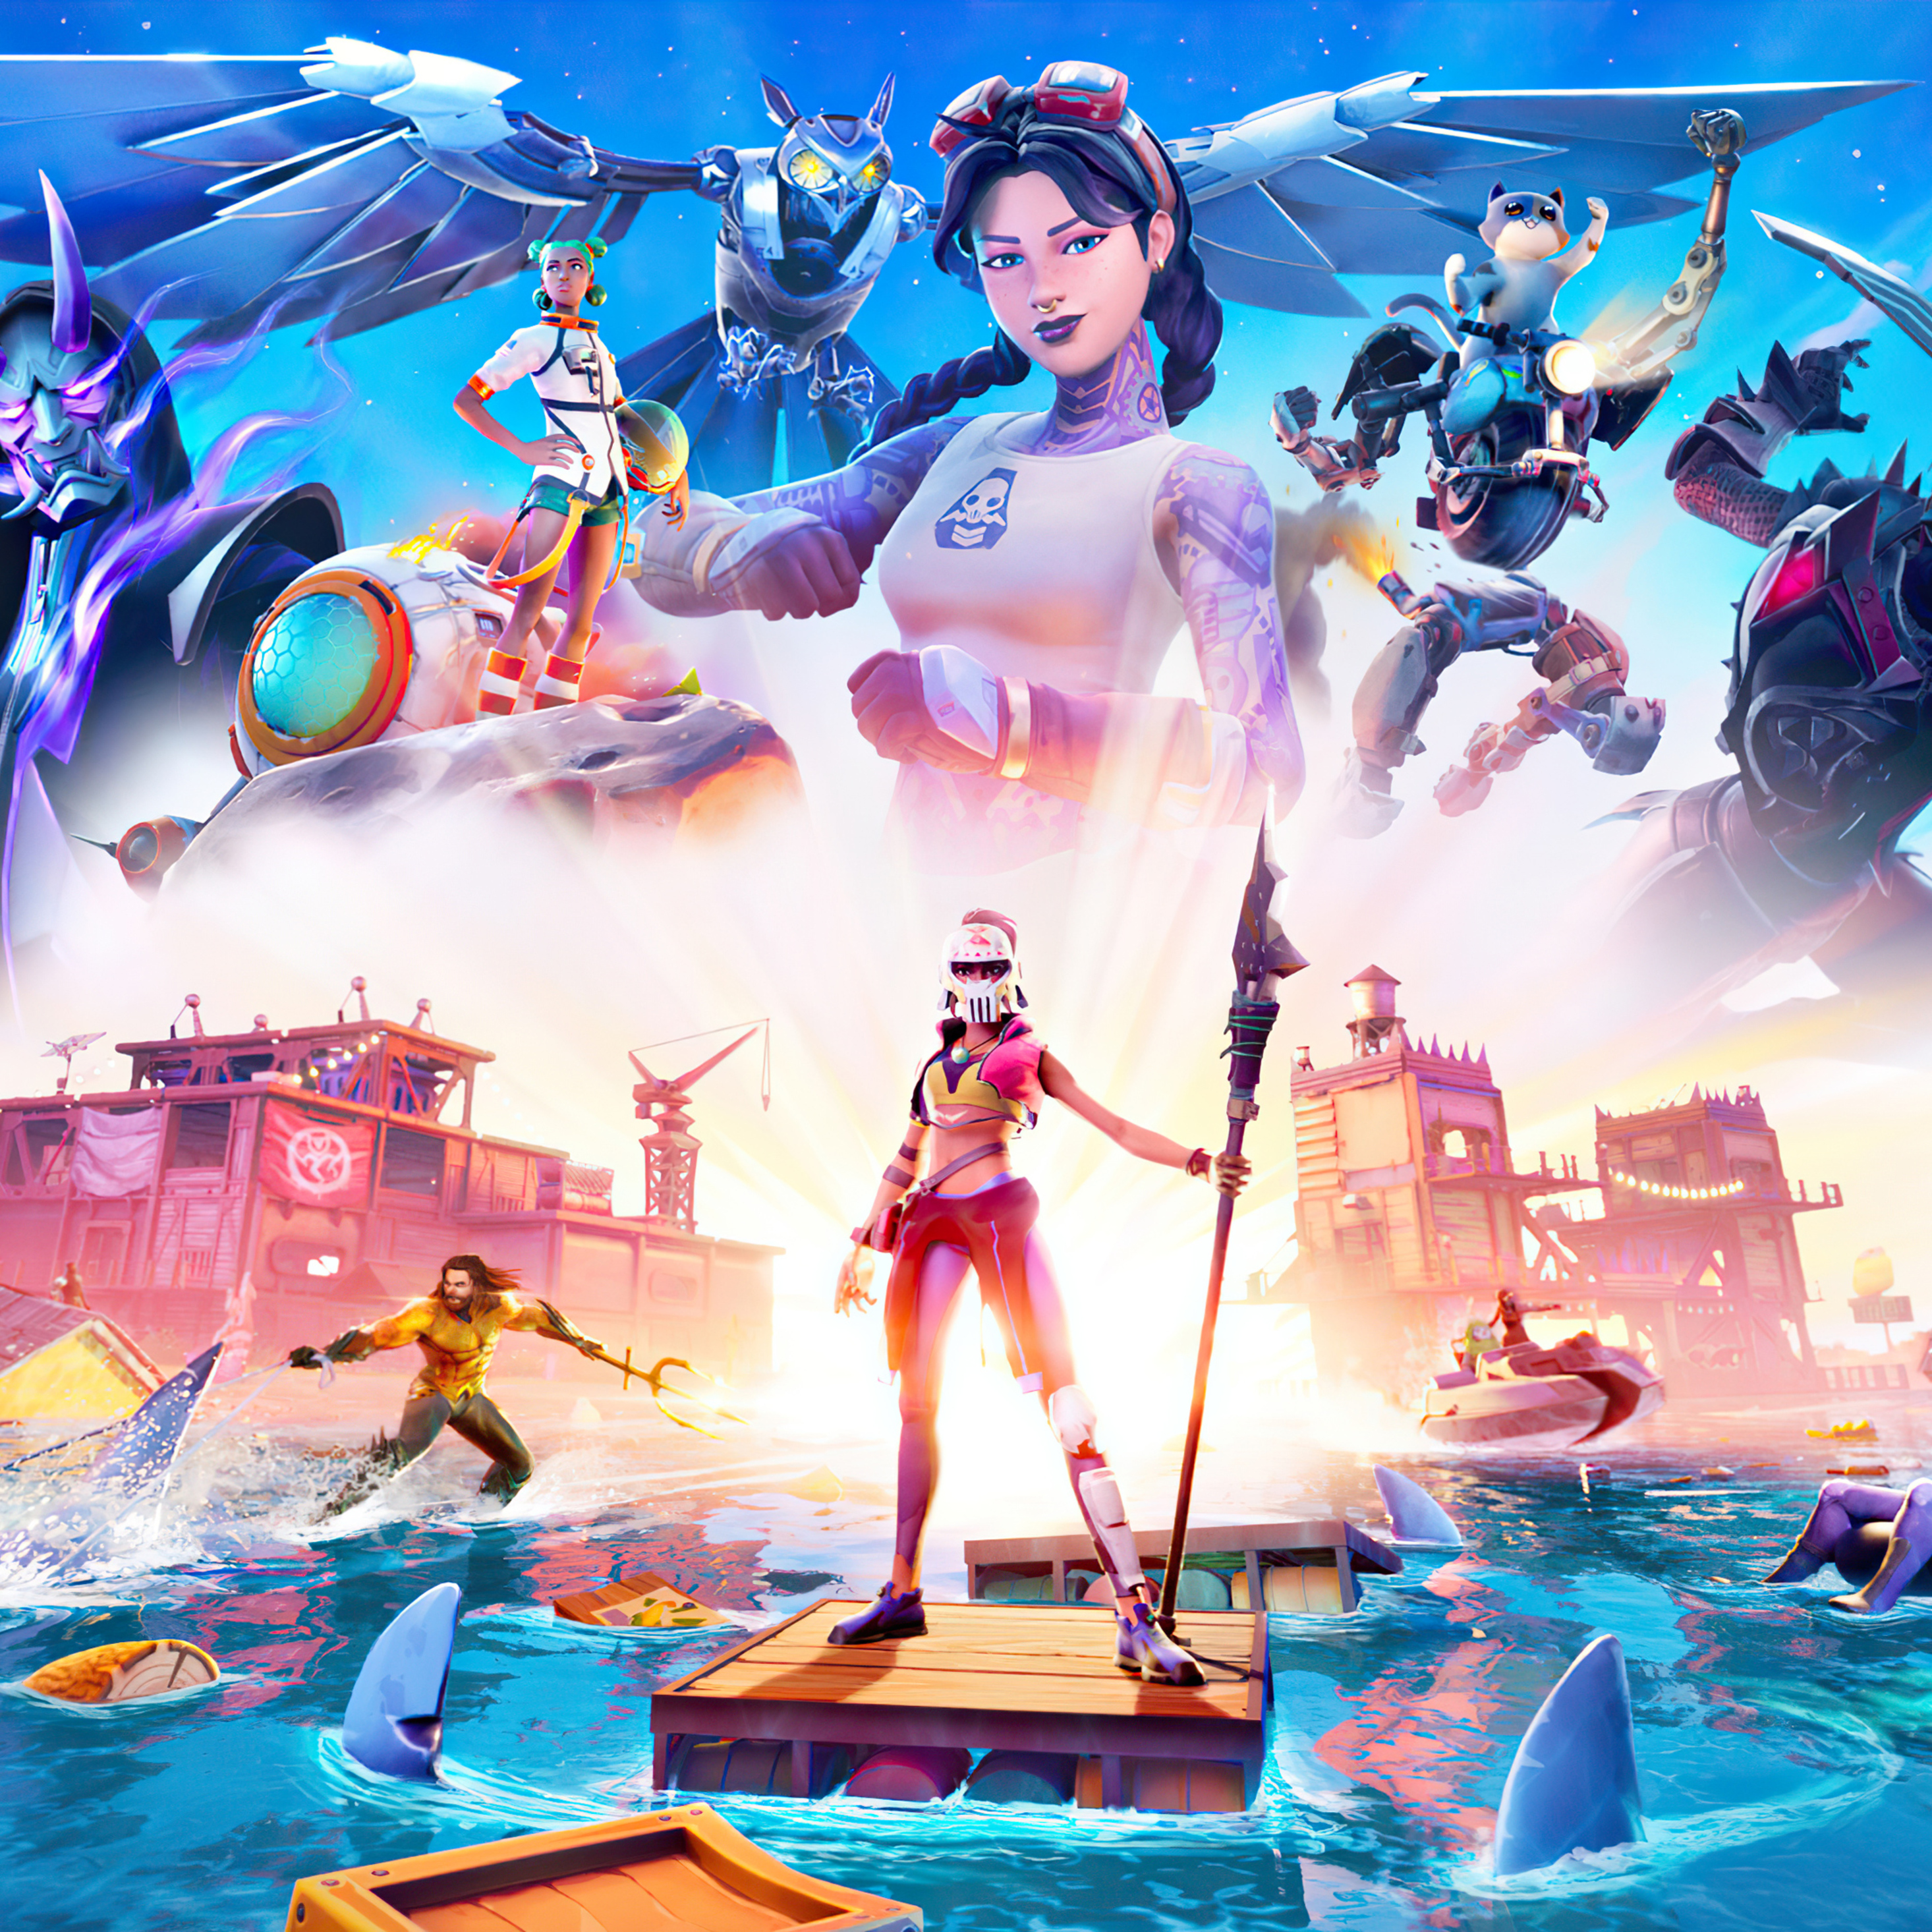 2932x2932 Fortnite Chapter 2 Season 3 Ipad Pro Retina Display Hd 4k Wallpapers Images Backgrounds Photos And Pictures